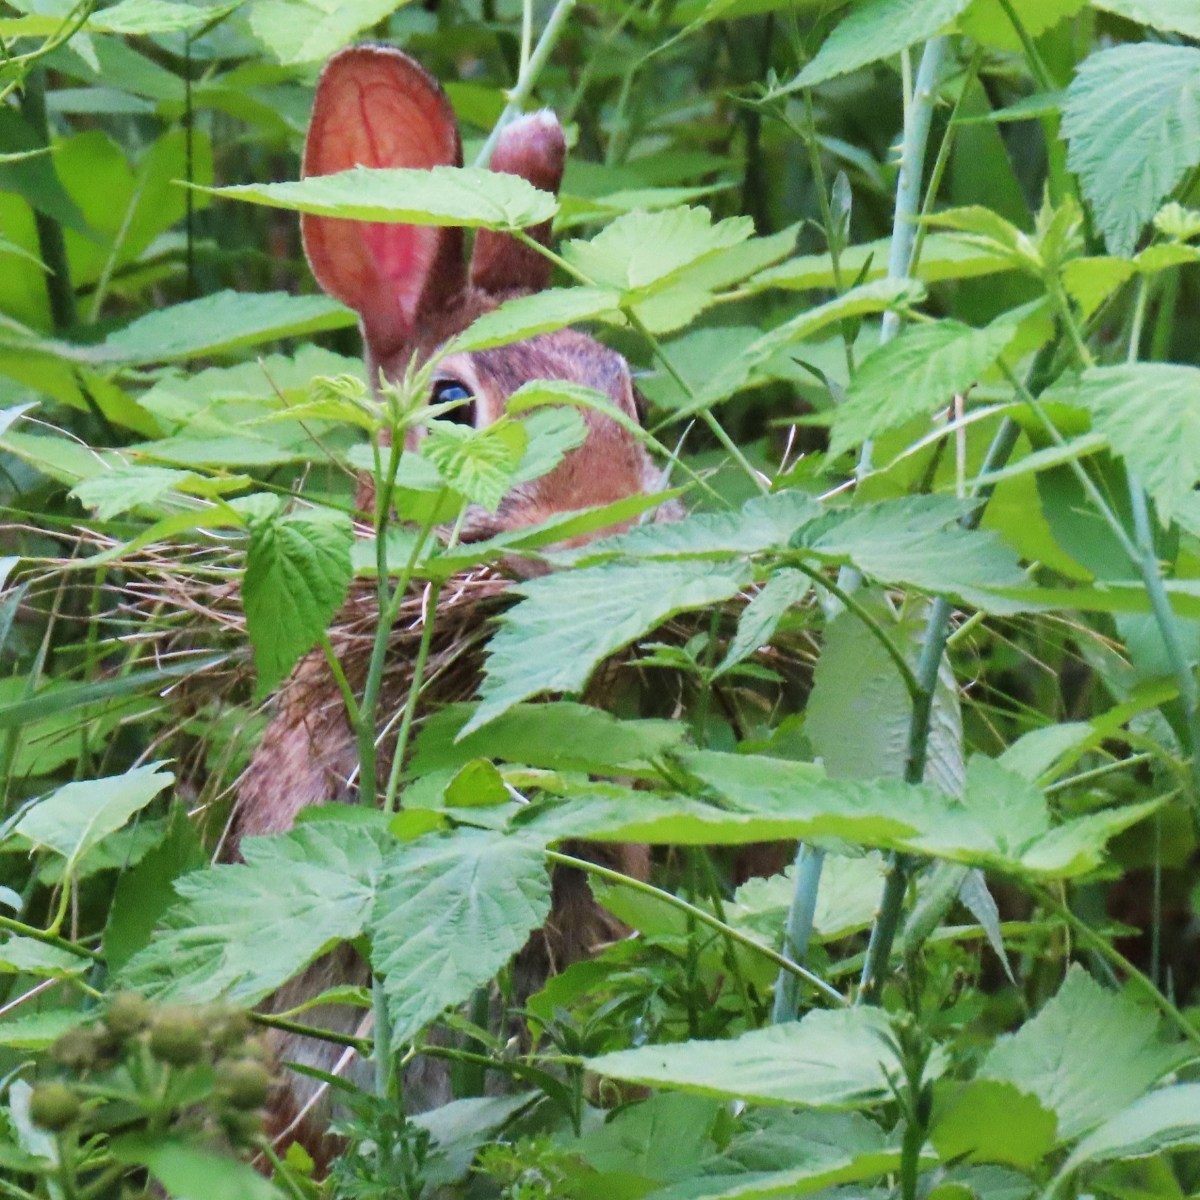 A rabbit in tall weeds with a mouthful of twigs for nest building